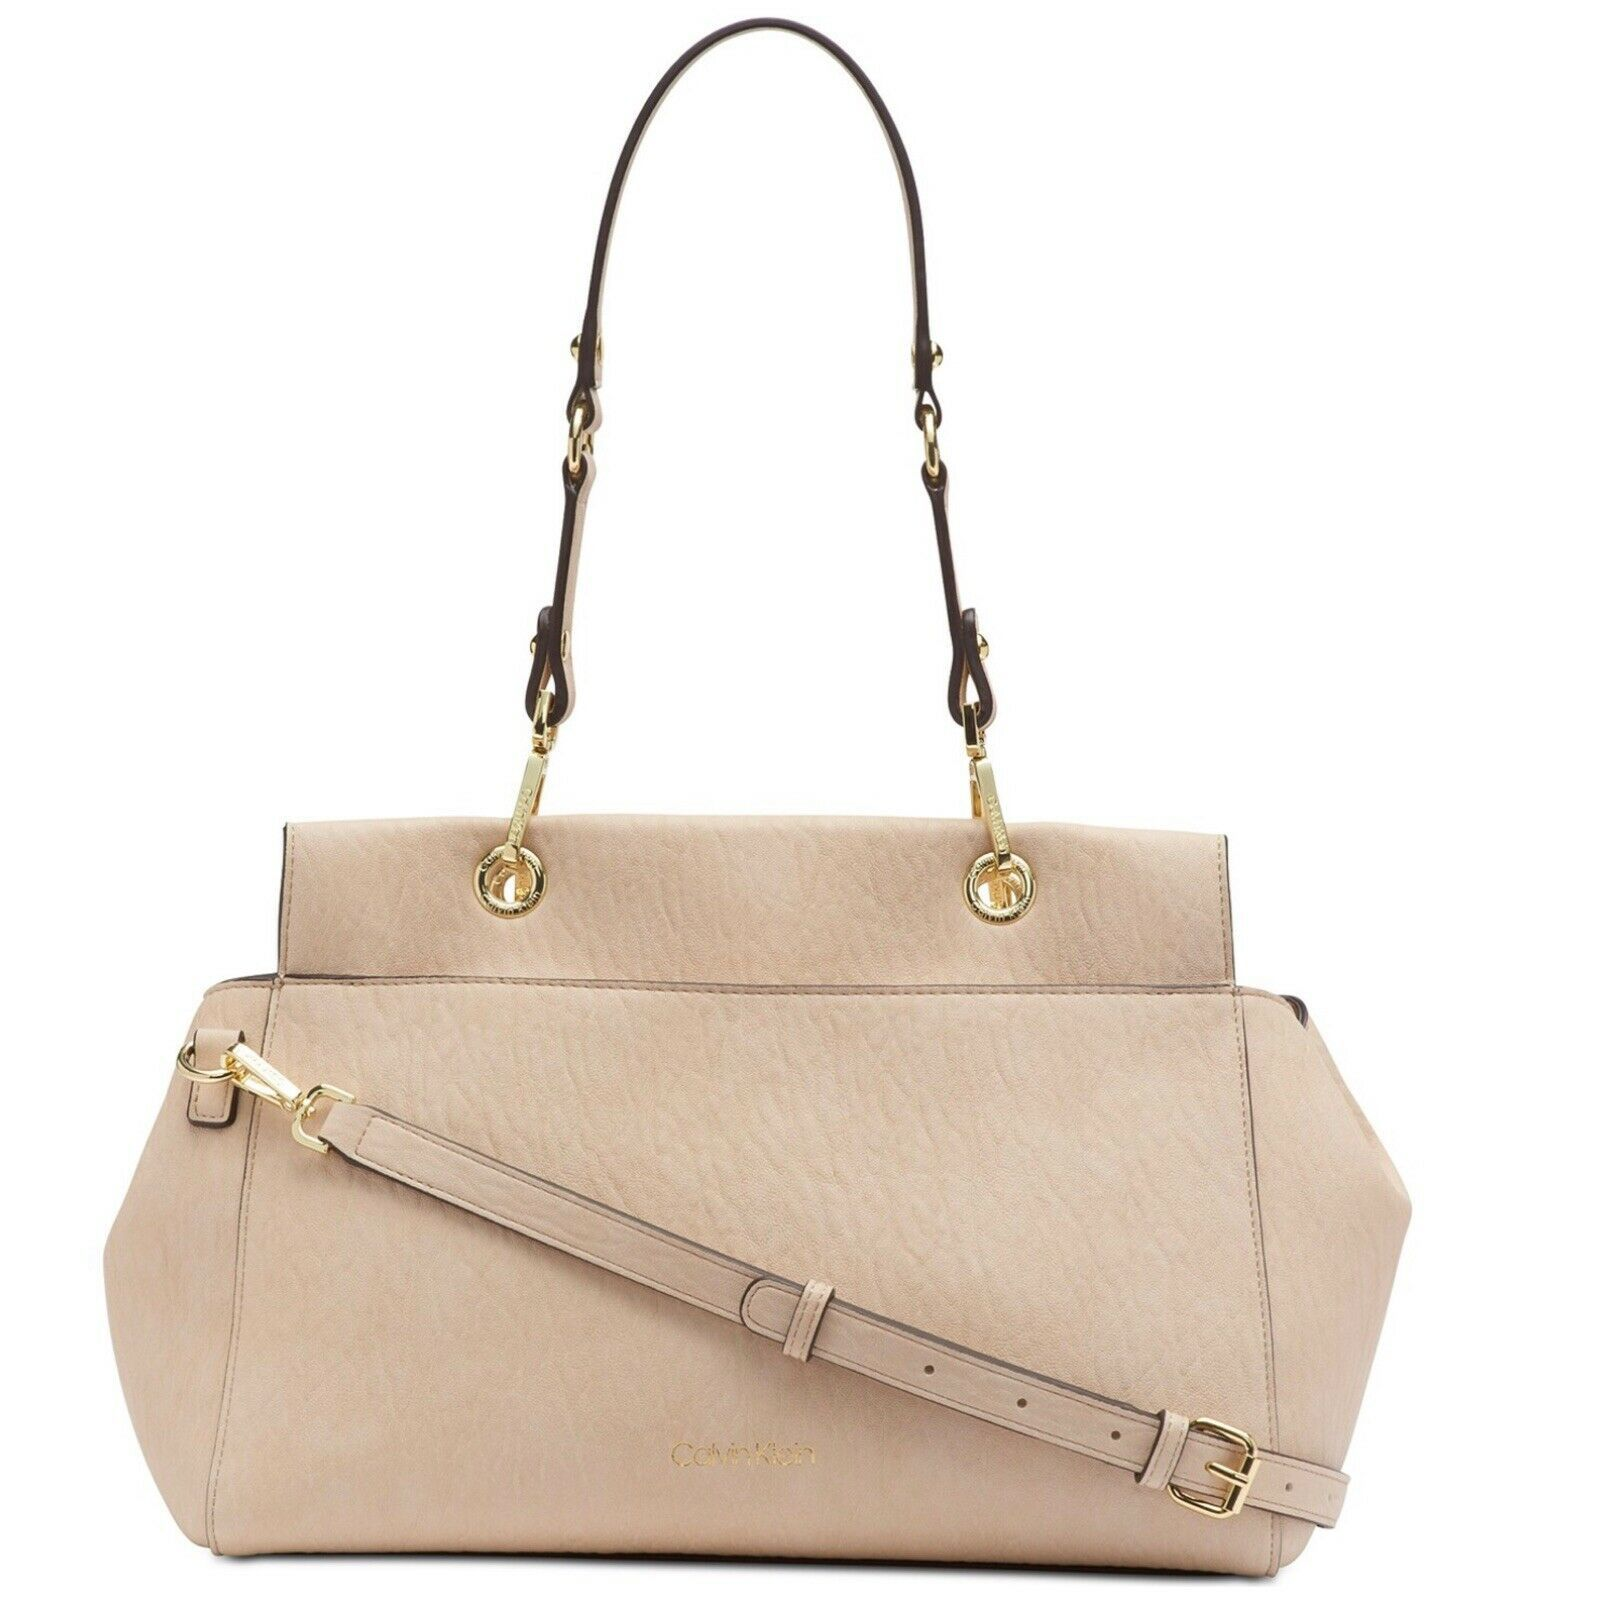 NWT Calvin Klein Sonoma Bubble Lamb Novelty Satchel Light Sand / Gold  $158 - $98.41